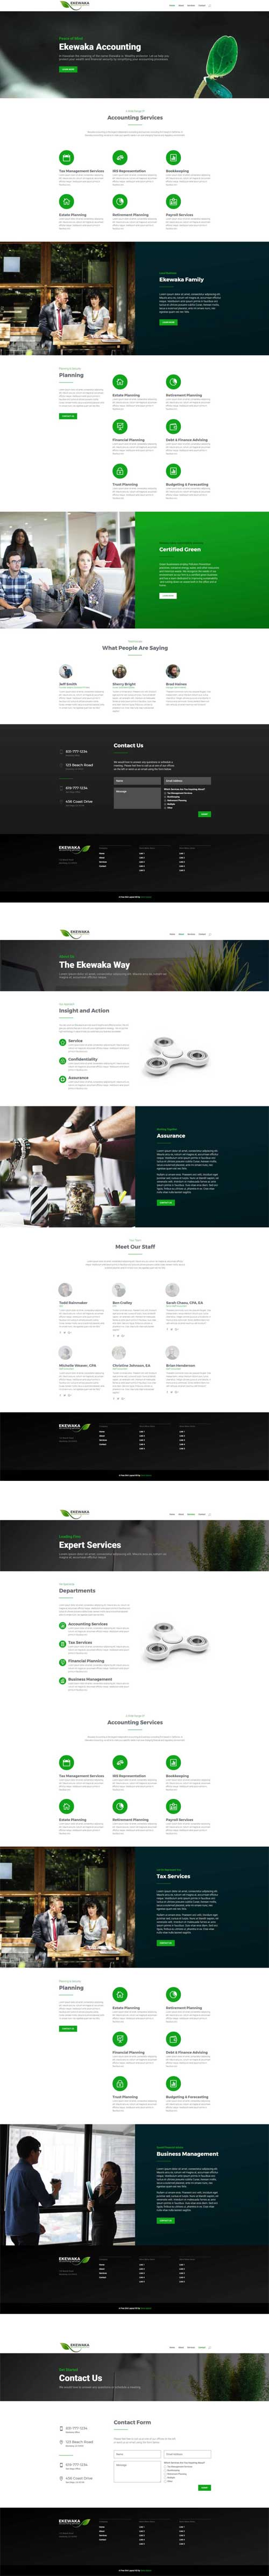 divi-accounting-layout-5